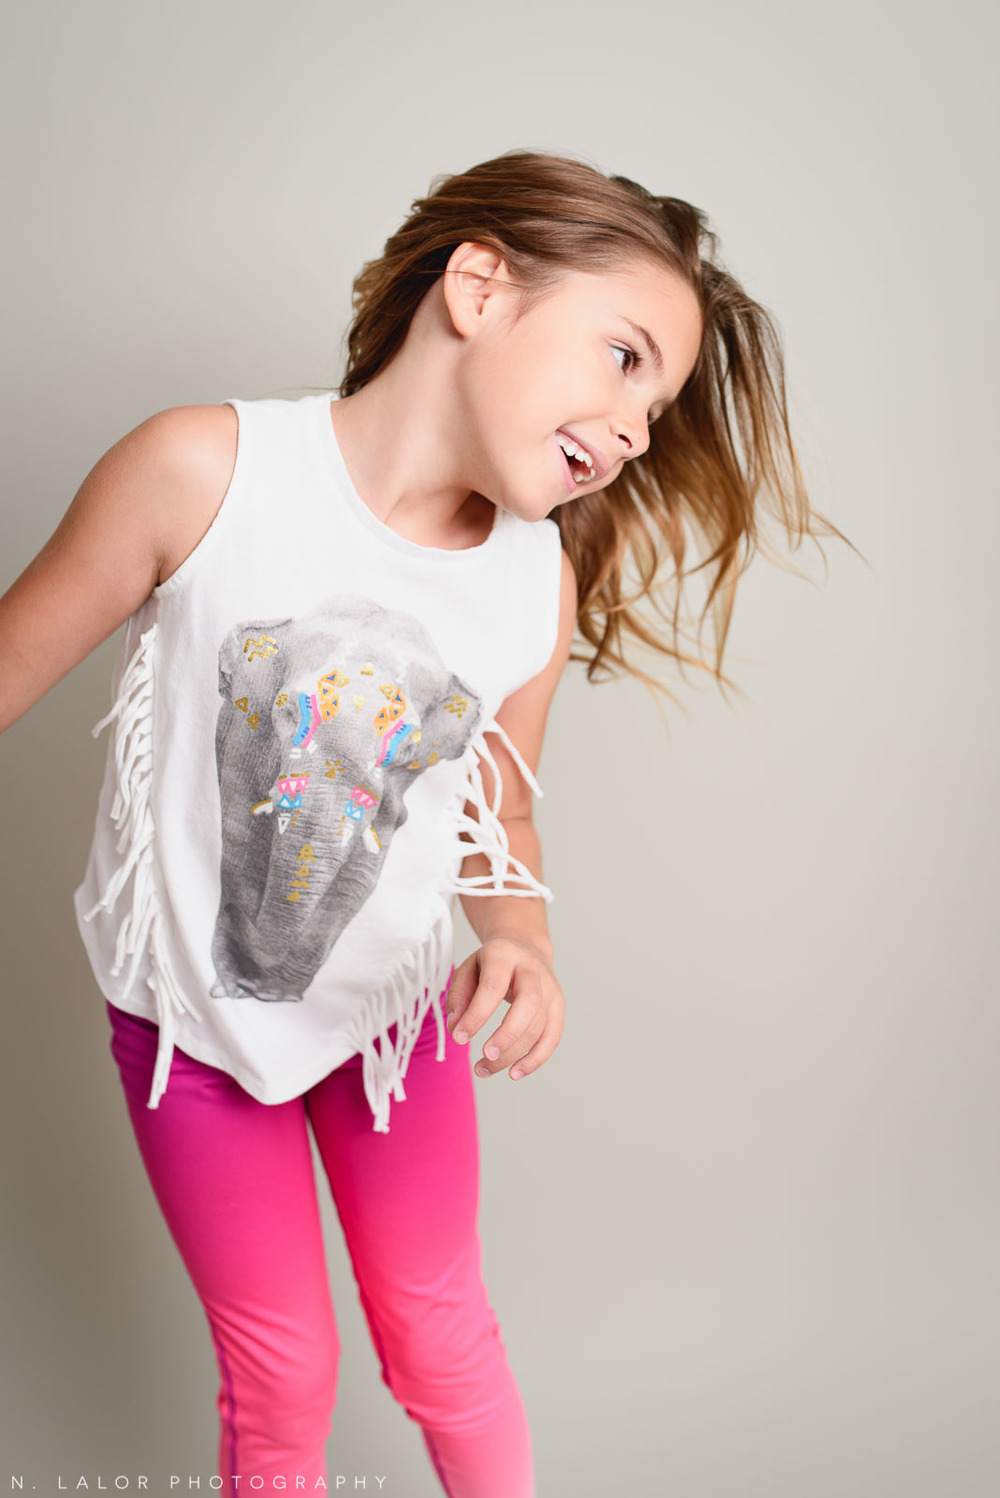 Movement. Editorial studio portrait of 6-year old girl by N. Lalor Photography in Greenwich, Connecticut.